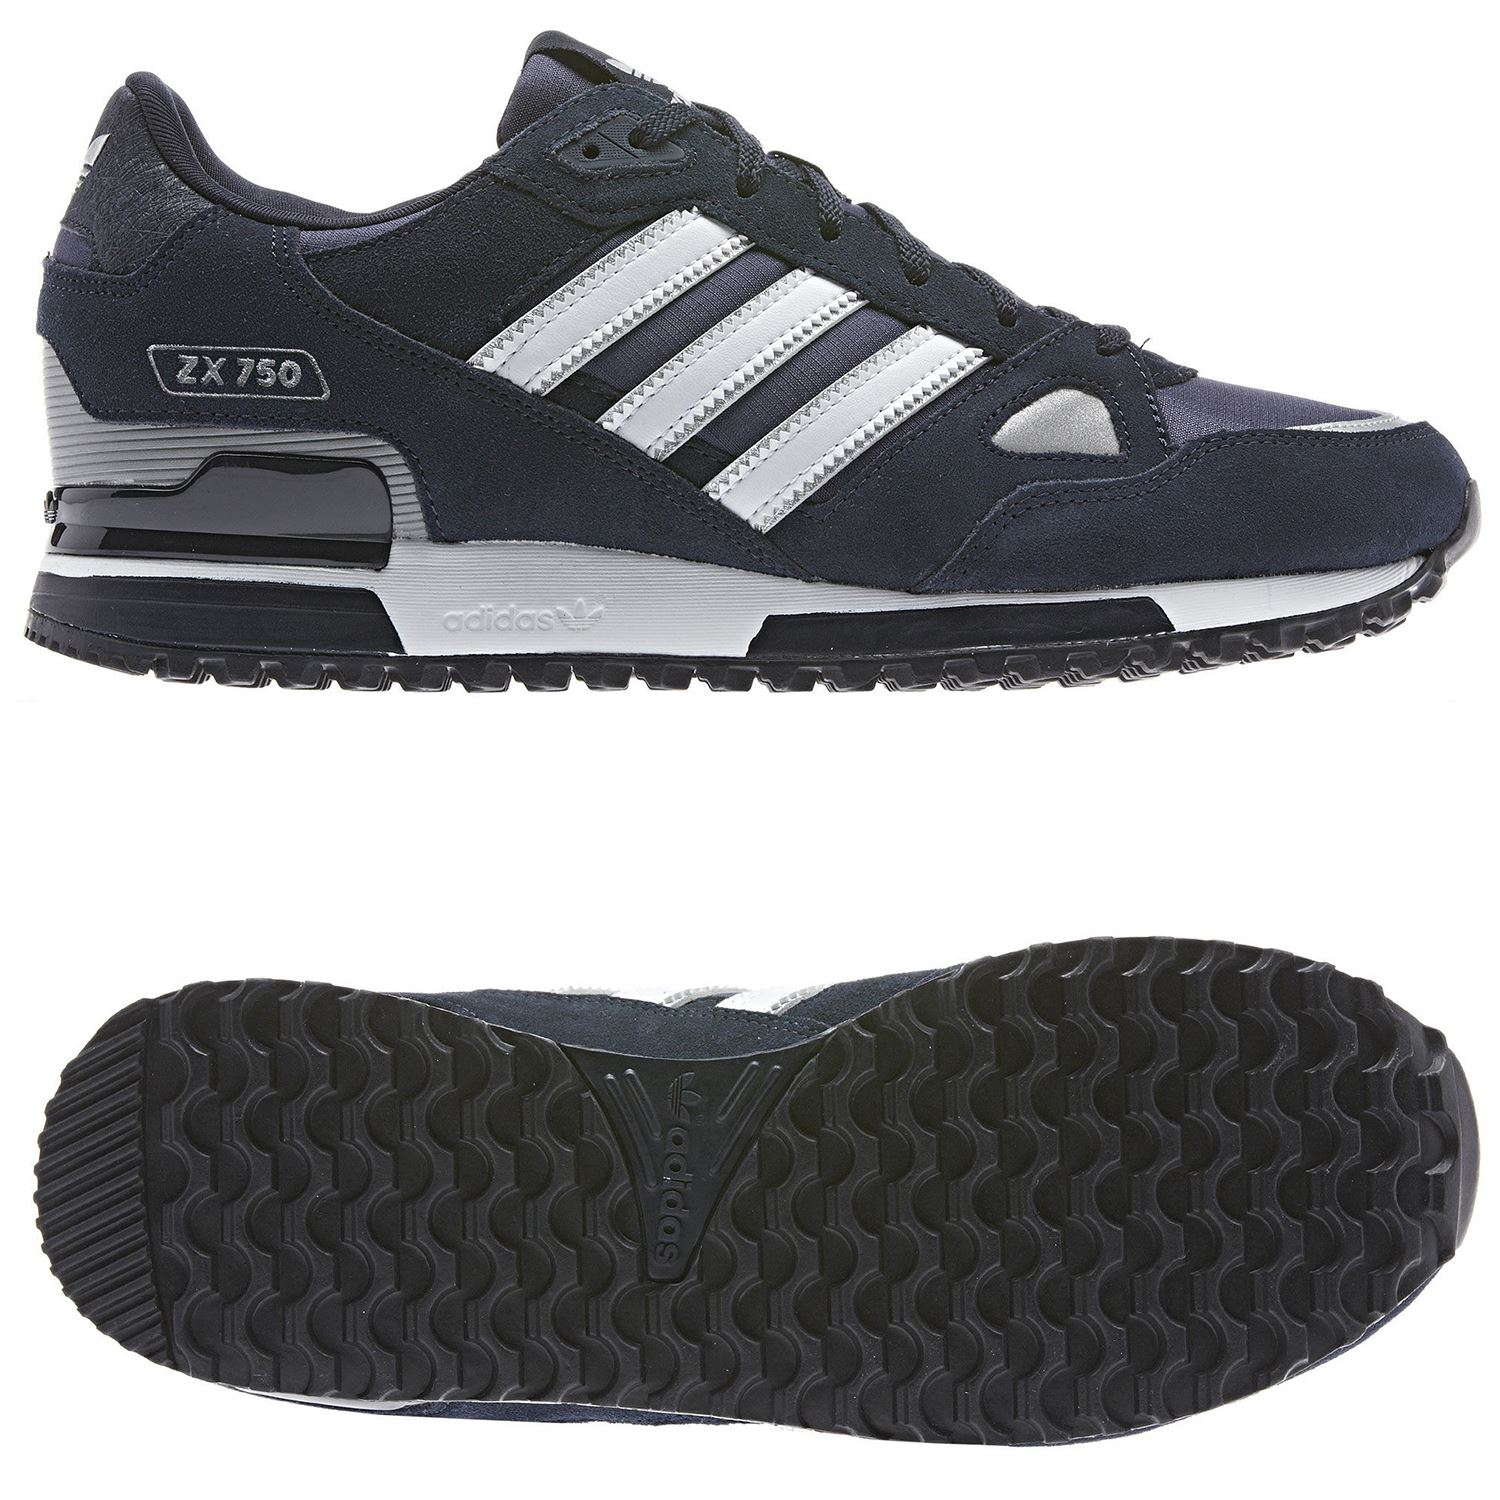 765c95ce5 ... new style picture 2 of 2 63692 e182c new style picture 2 of 2 63692  e182c  norway limited edition mens quick adidas zx 750 trainers suede  g20867 navy ...